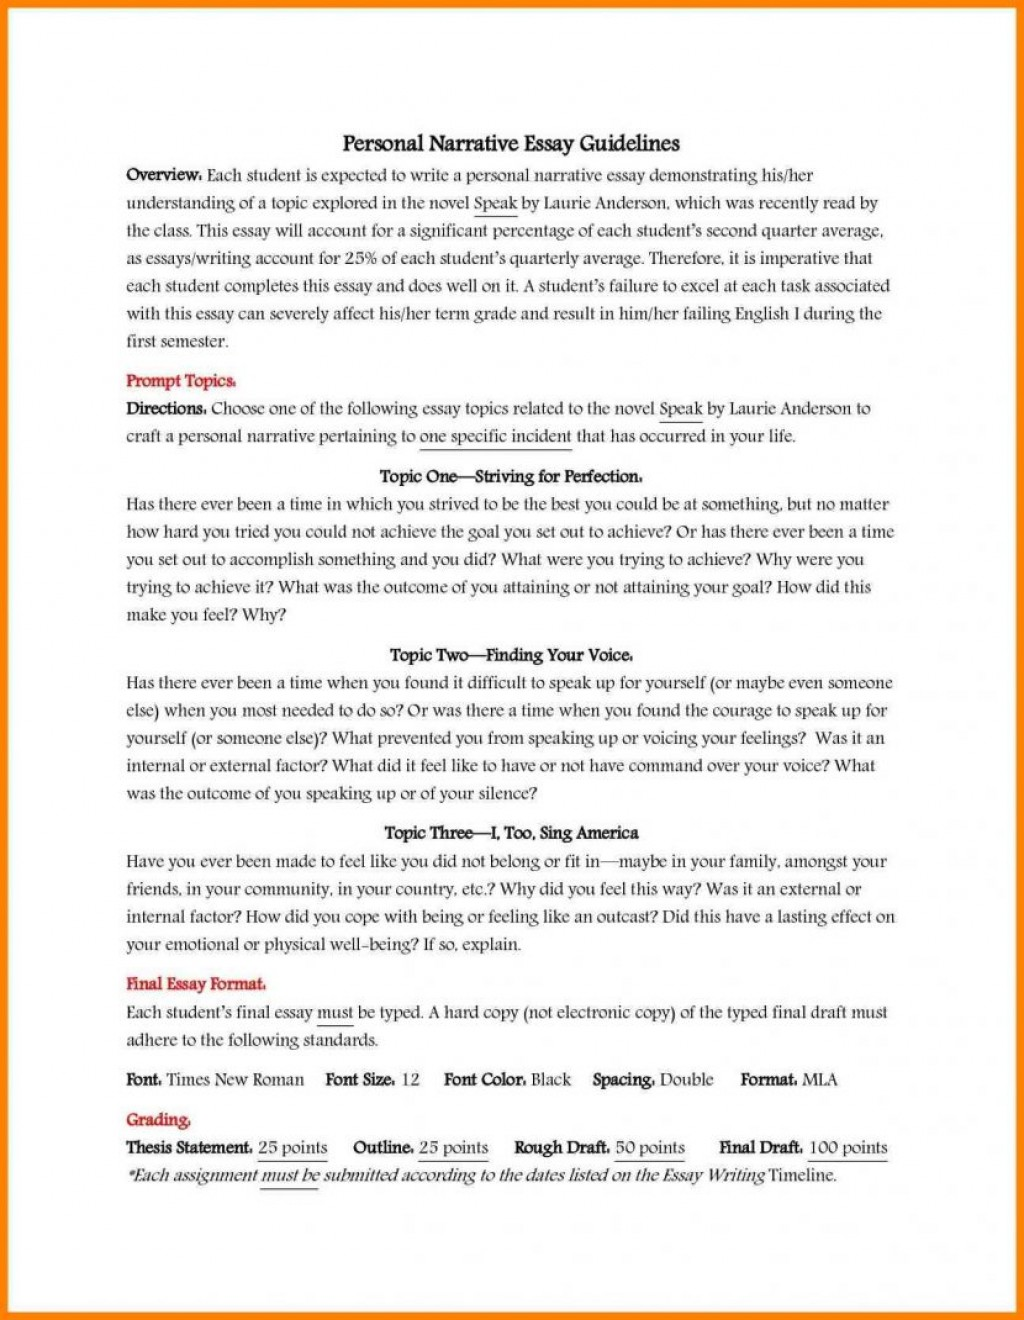 021 Essay Example Free Essays Topics Homework Service How To Write An History Narrative For High School Format Picture Wr Explaining Bake Cake Teaching Child Explain From Book Stirring Questions Grade 10 Before 1877 Students Large